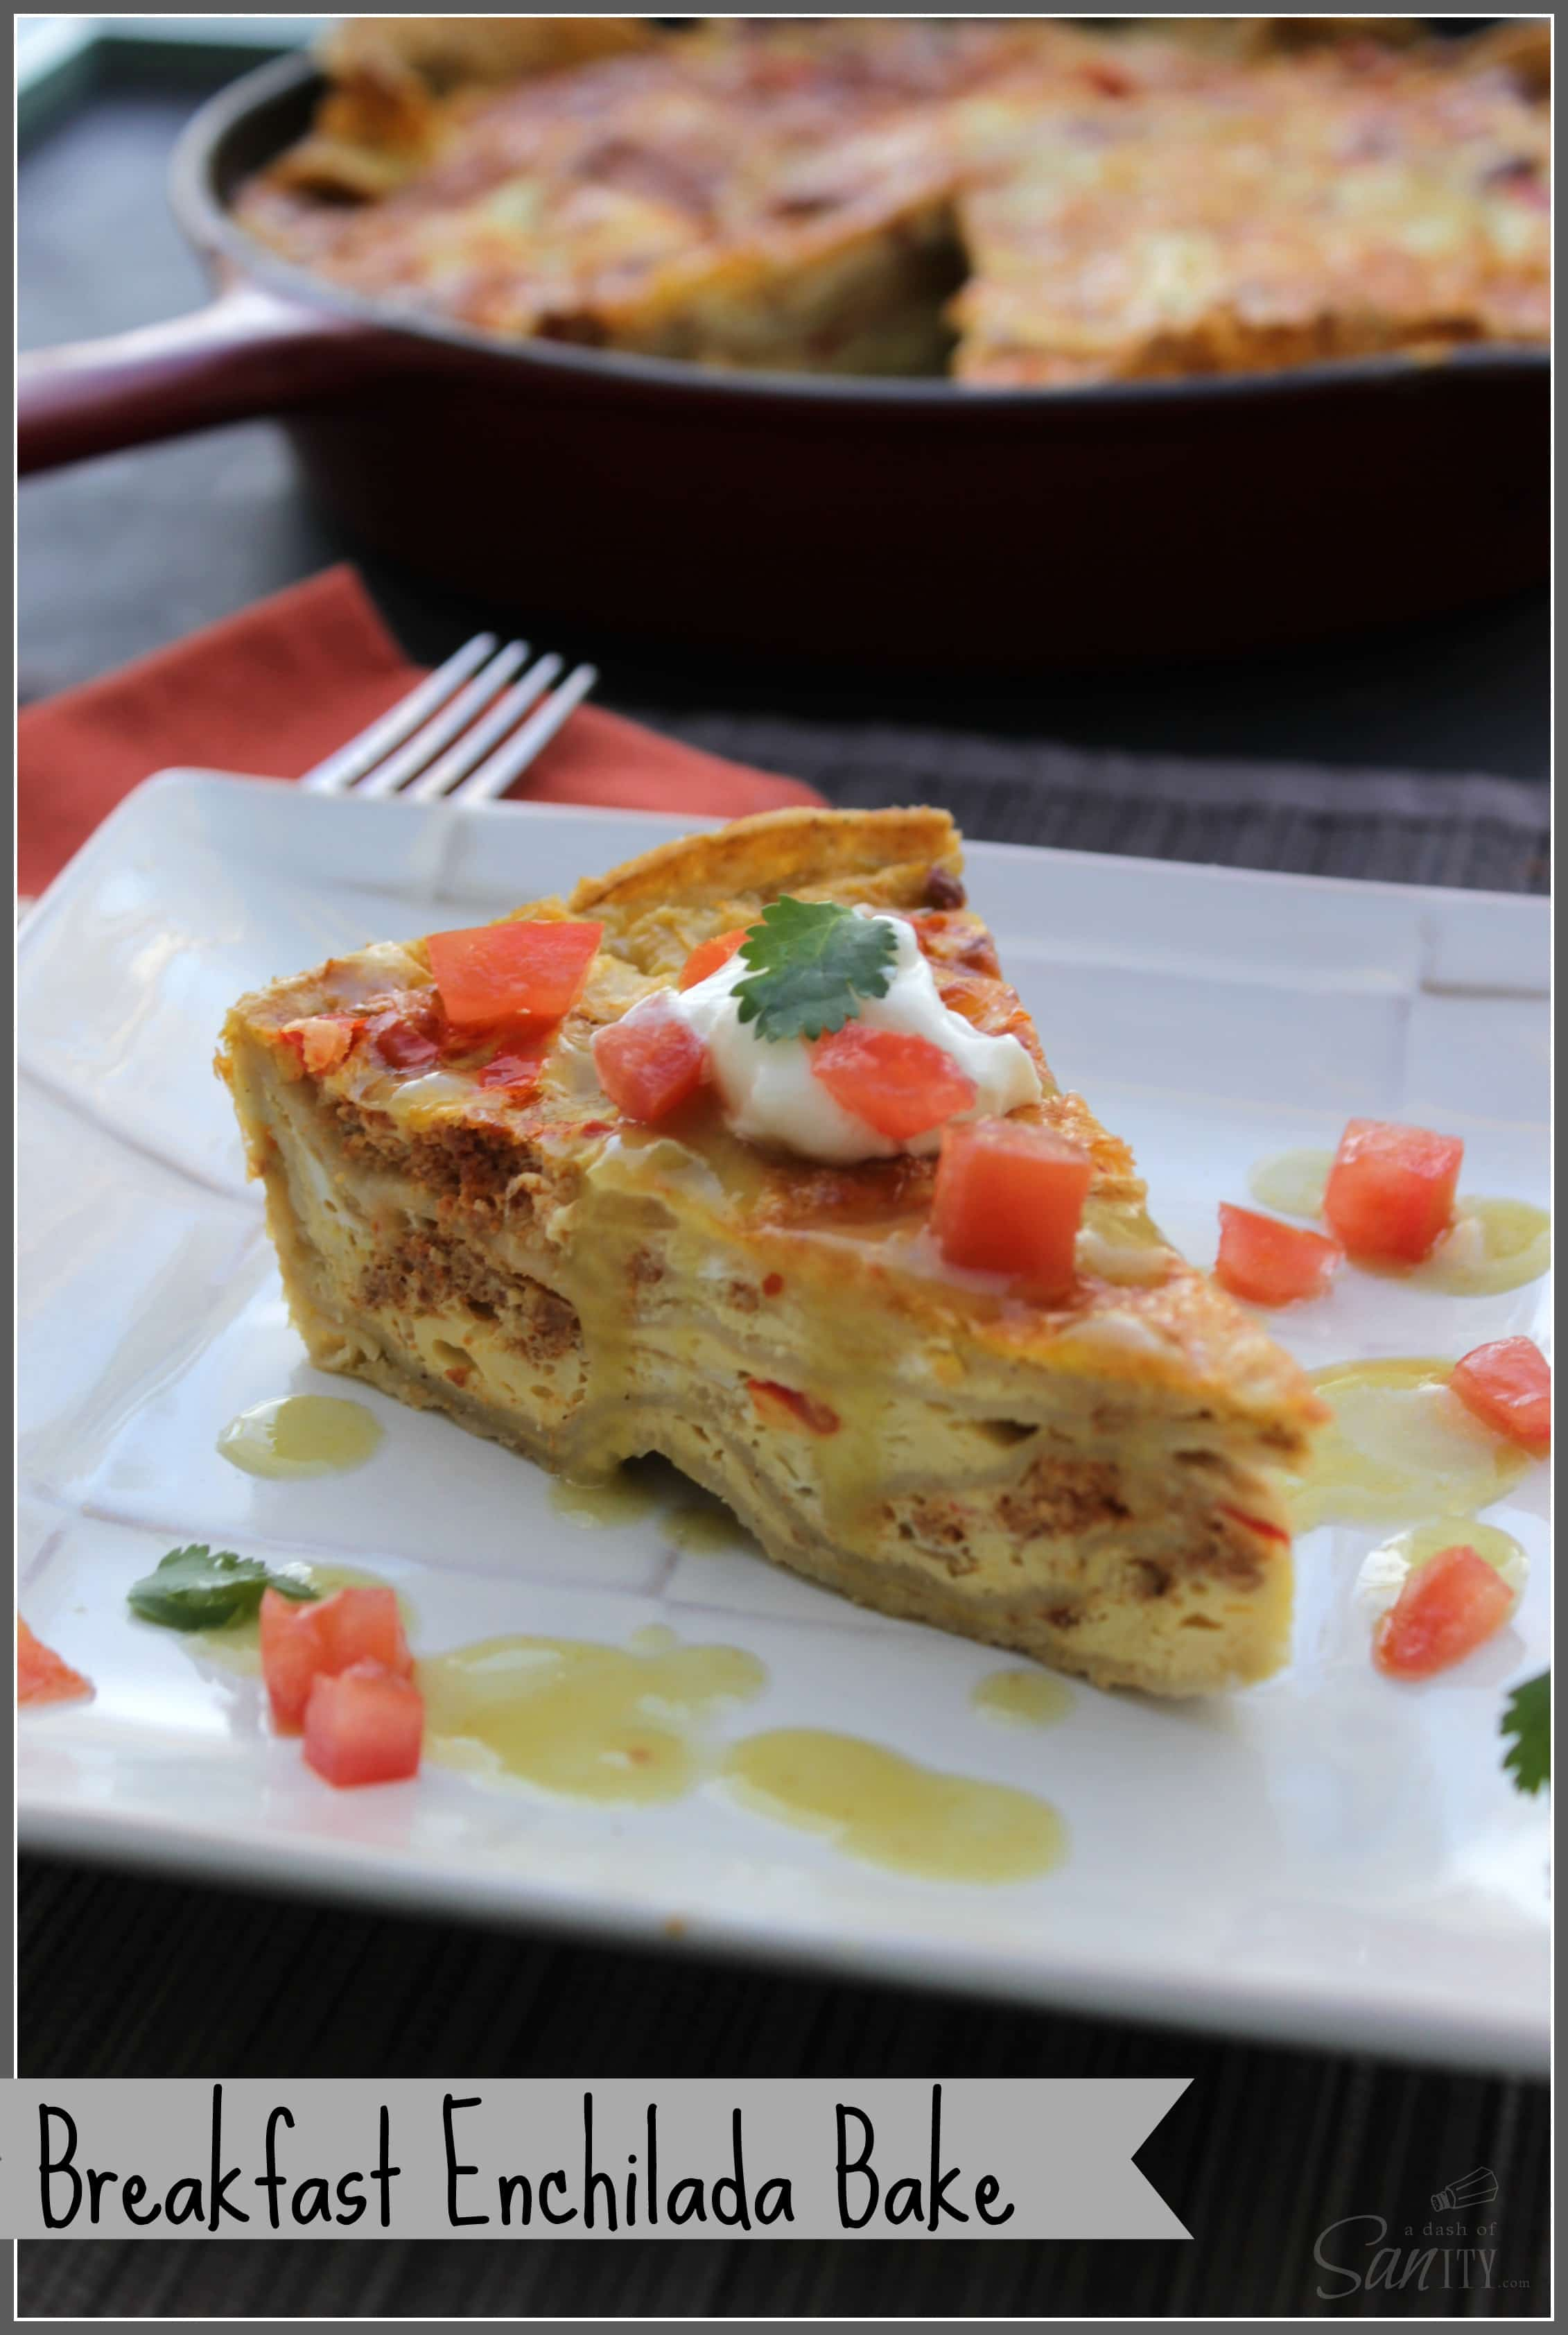 Breakfast Enchilada Bake slice served on a square plate, with cast iron skillet in background